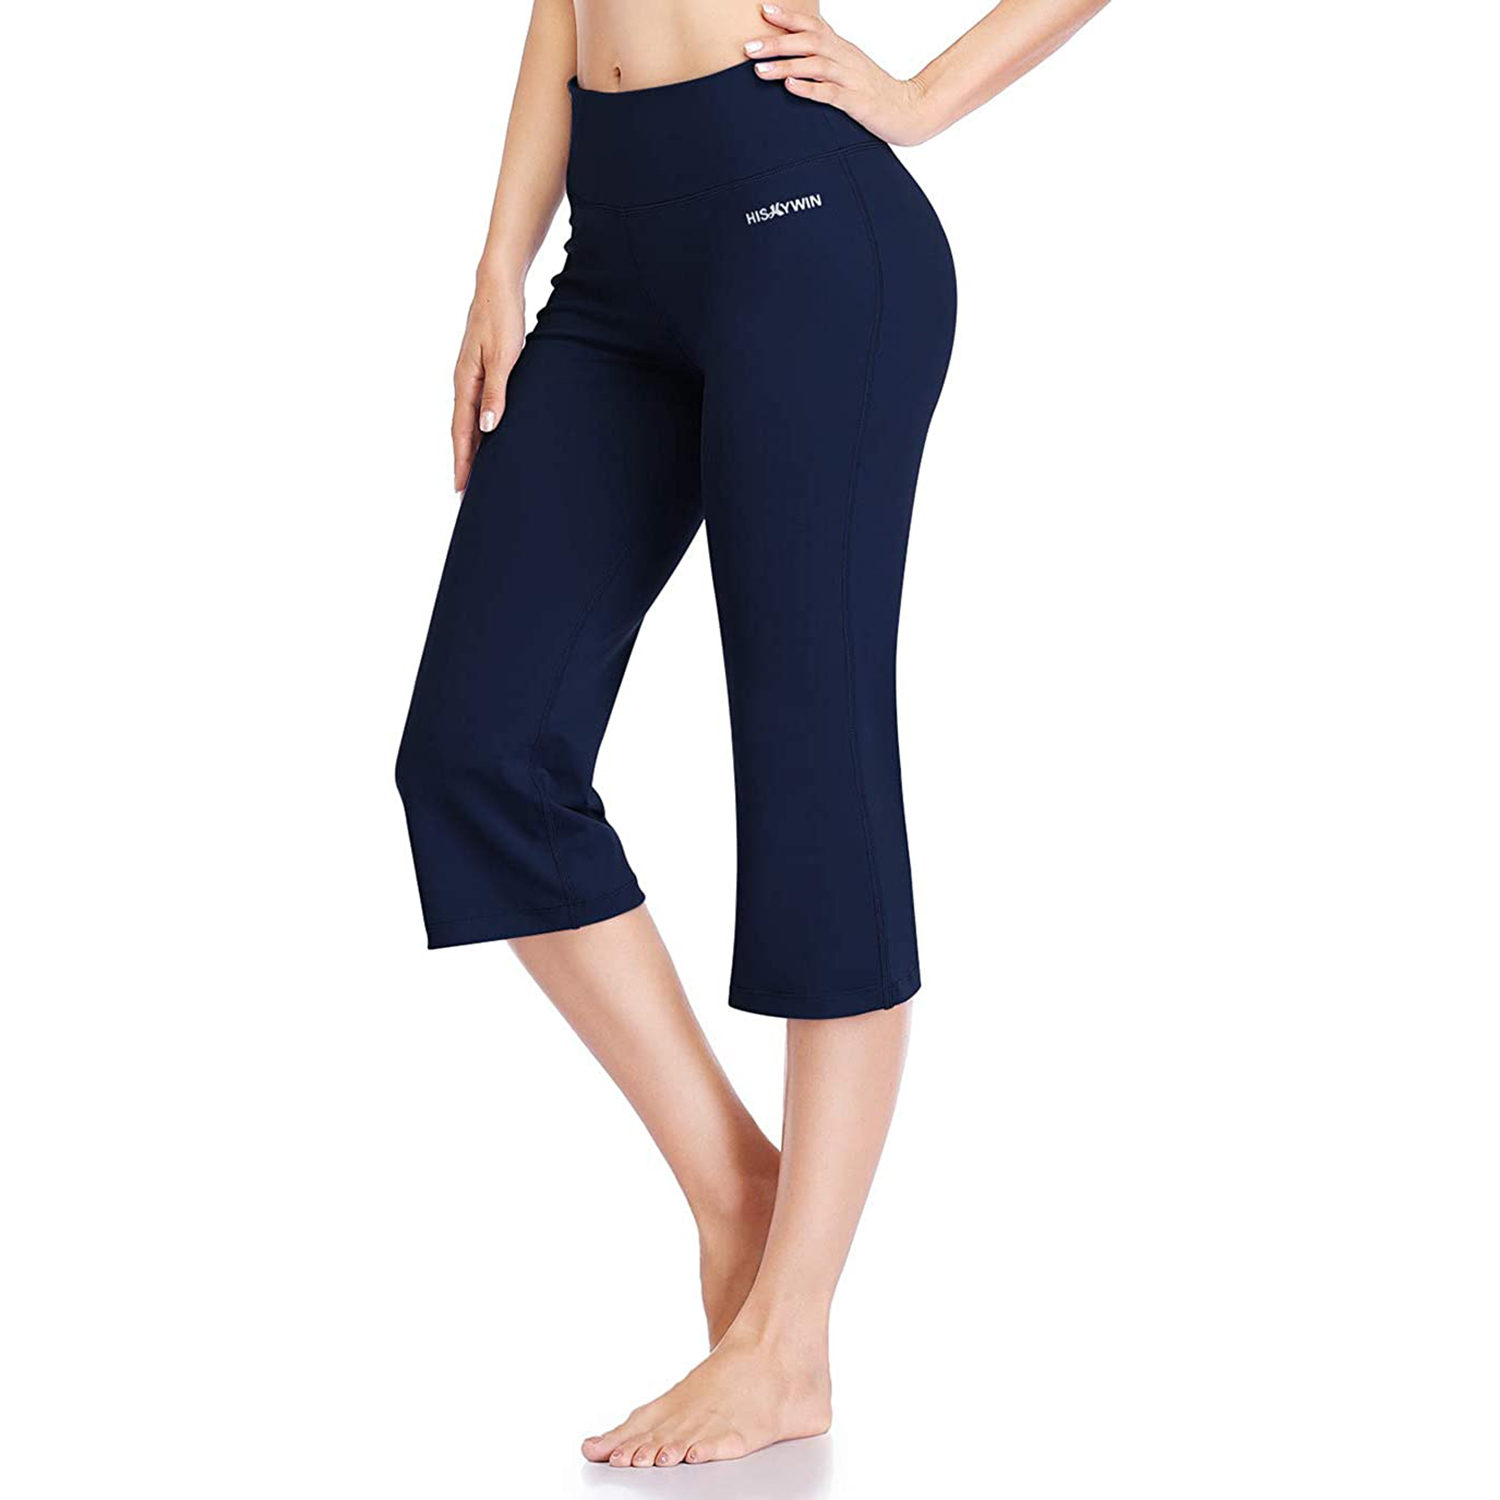 HISKYWIN Inner Pocket Yoga Pants 4 Way Stretch Tummy Control Workout Running Pants